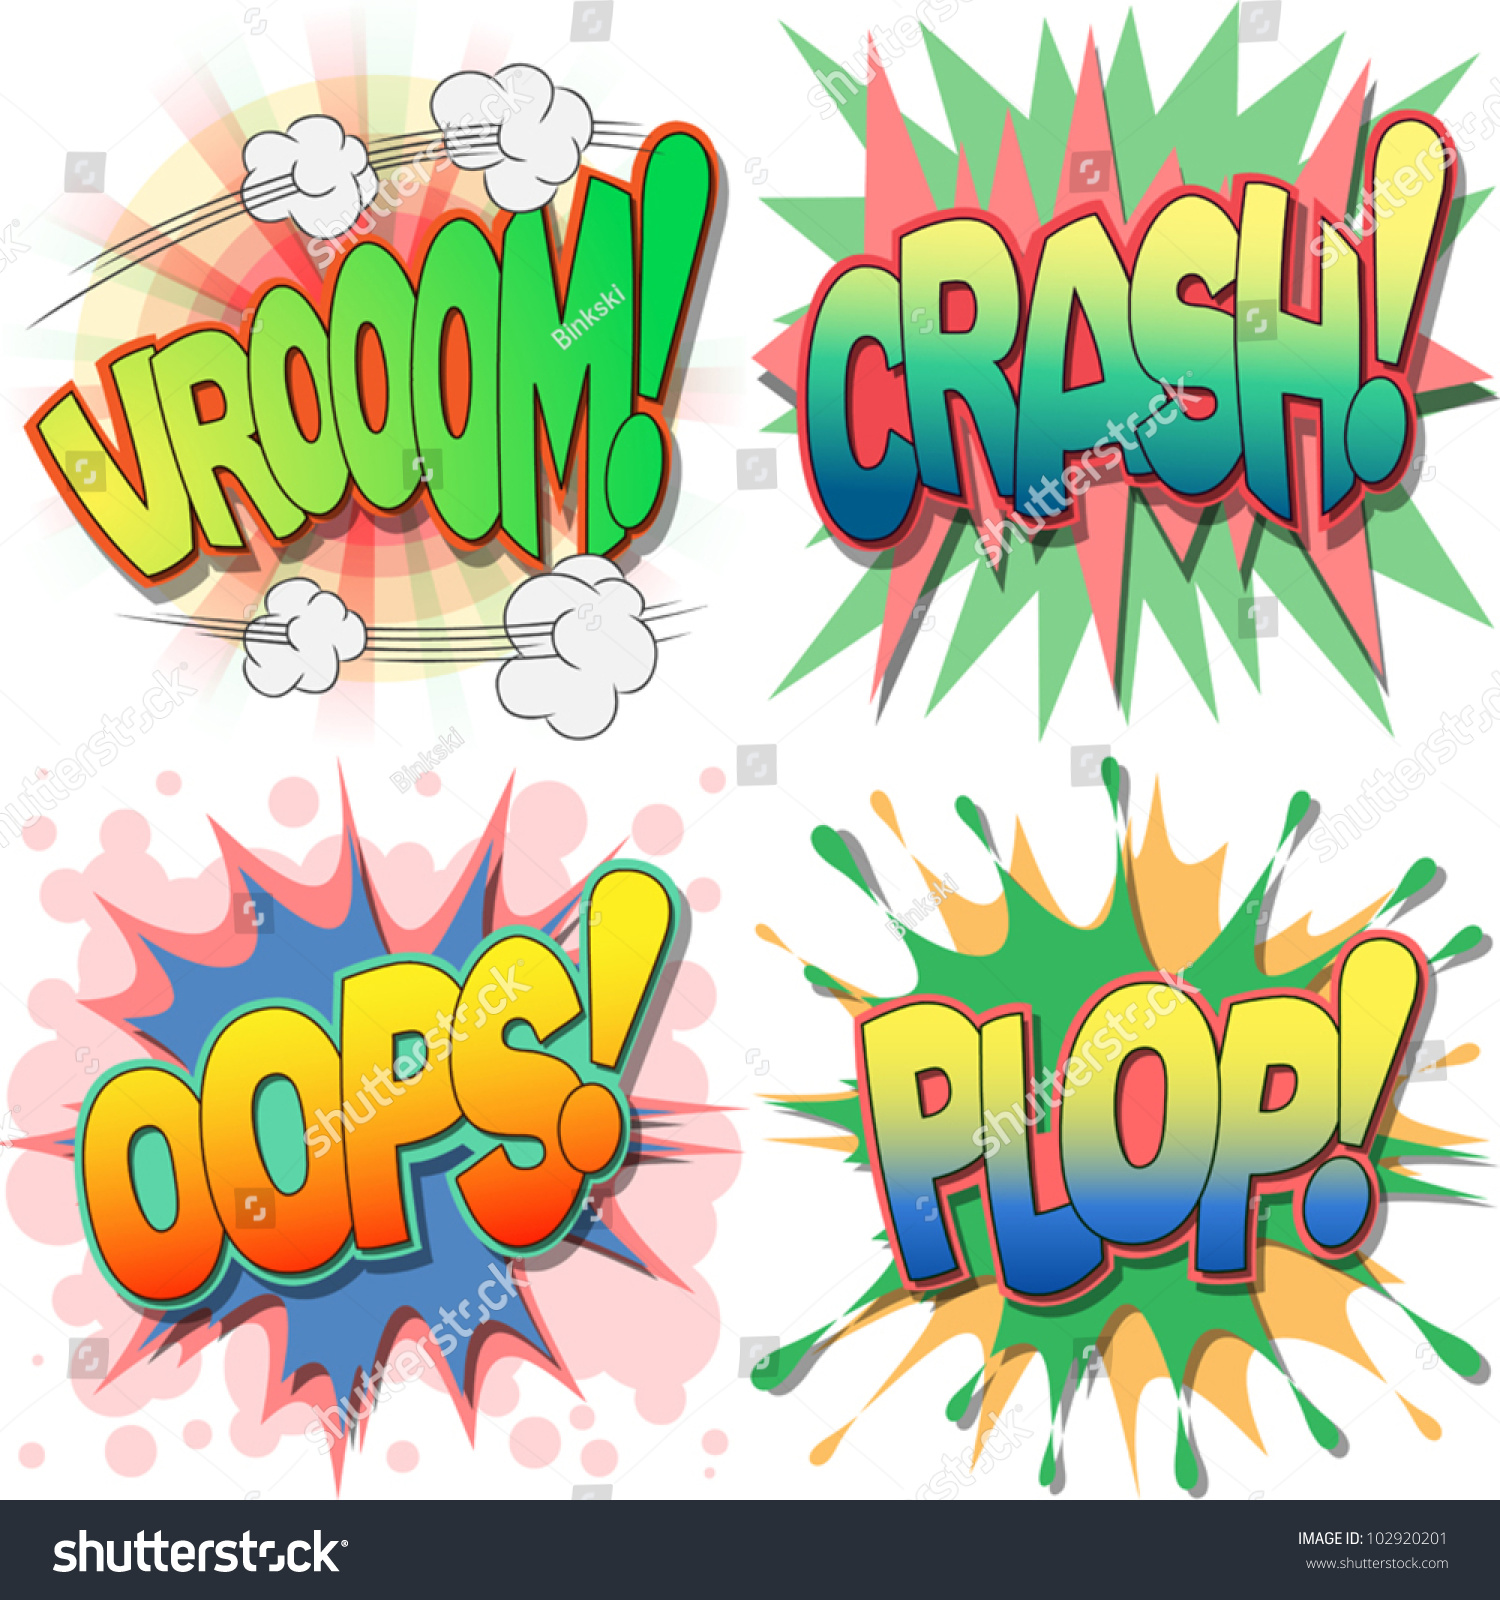 selection comic book exclamations action words stock vector a selection of comic book exclamations and action words vroom crash oops